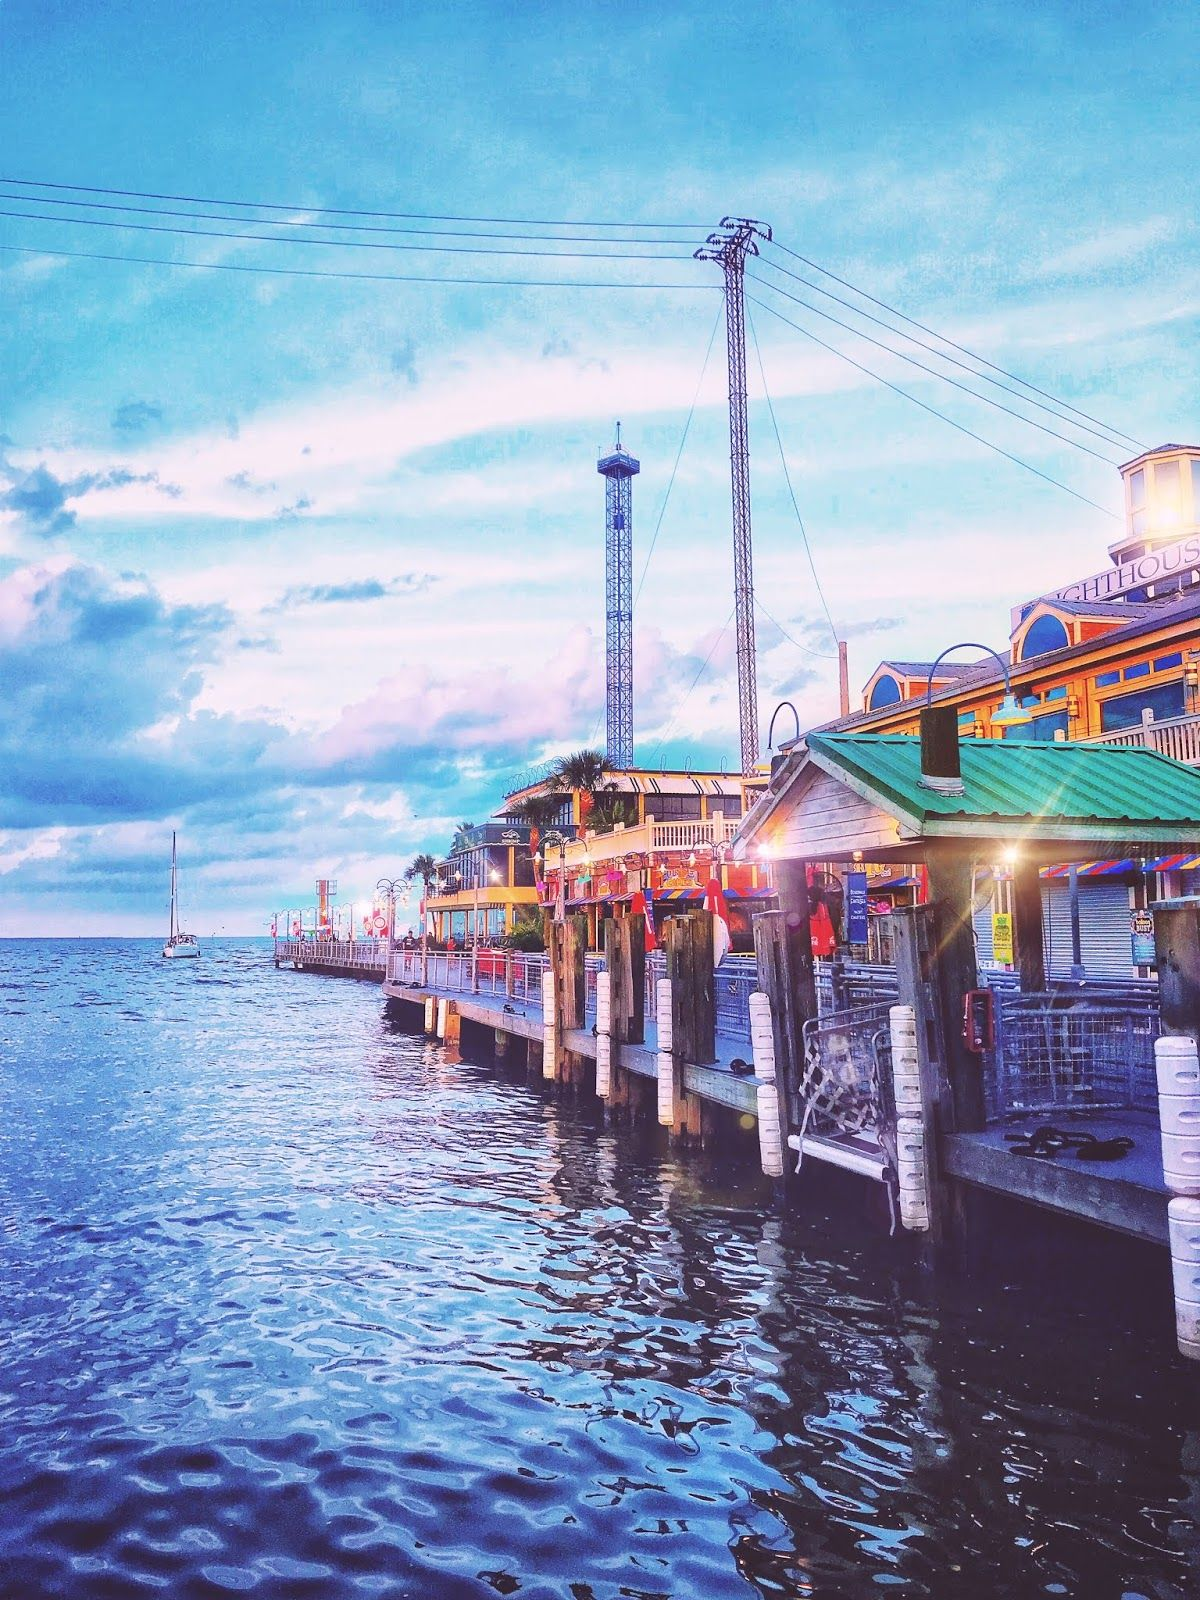 Kemah Boardwalk is a FunPacked Mecca for Family Getaway